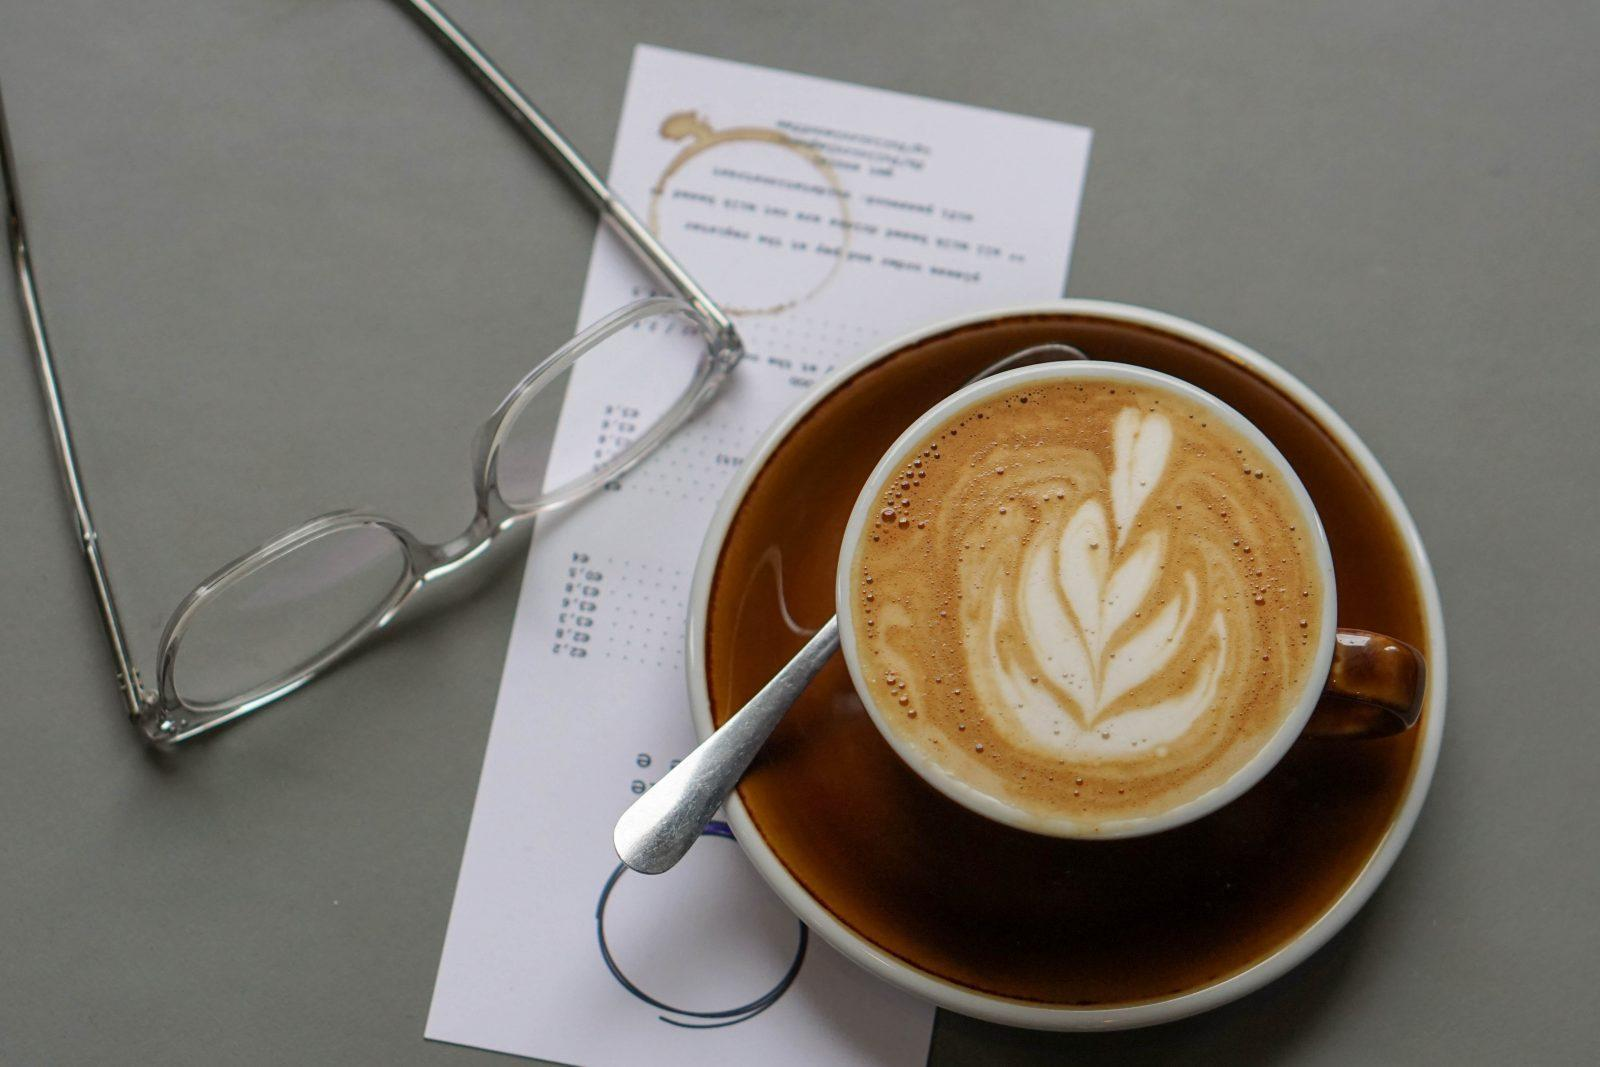 full-circle-coffee-ghent-the-coffeevine-4